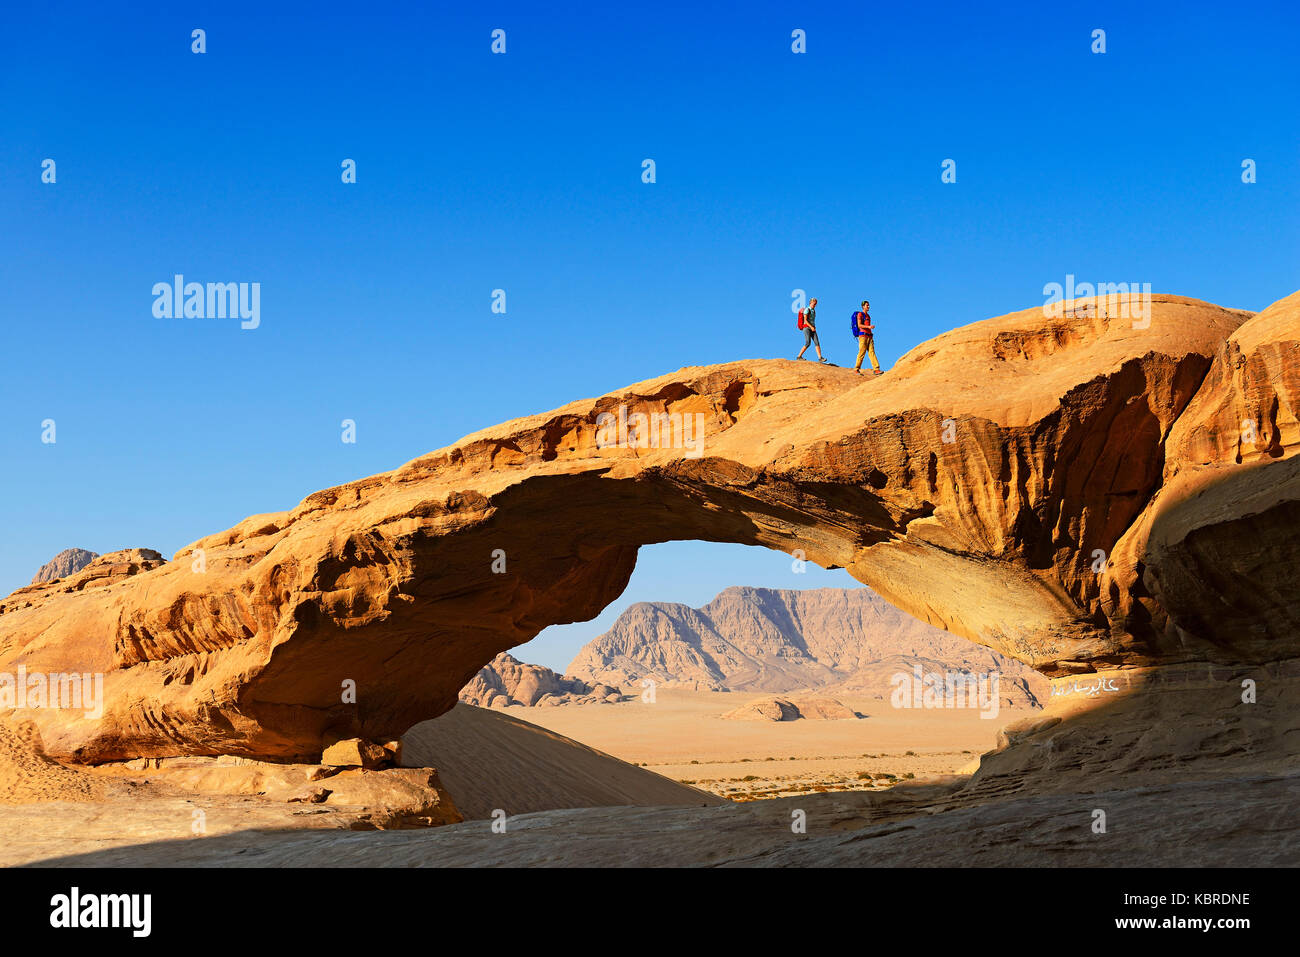 Couple hiking at Rock-Arch named Al Kharza, Wadi Rum, Jordan - Stock Image